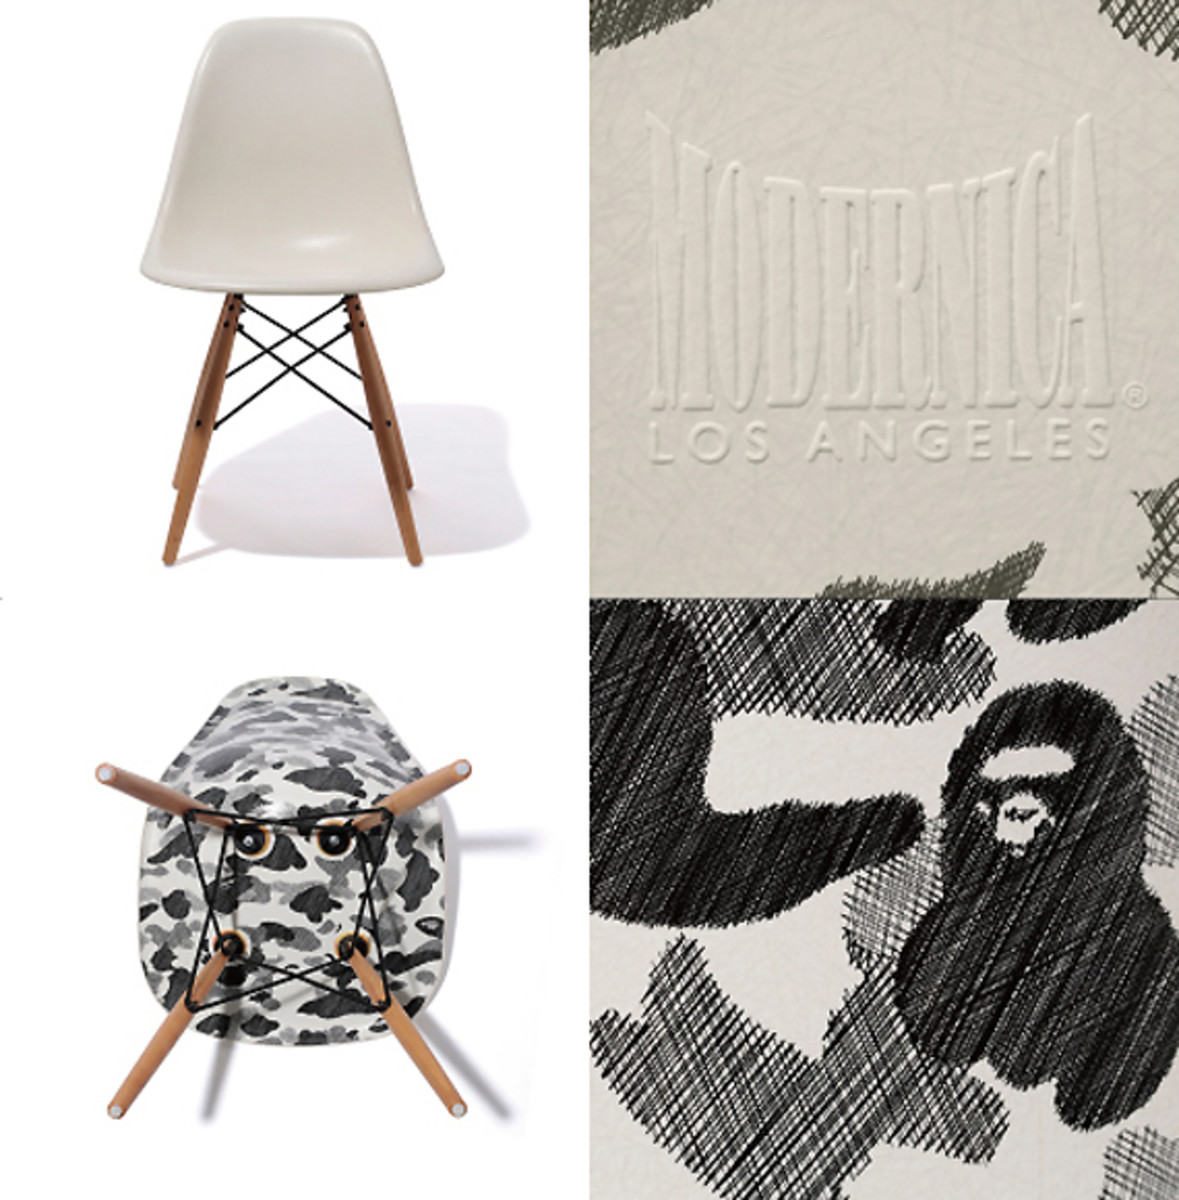 a-bathing-ape-modernica-furniture-collection-04